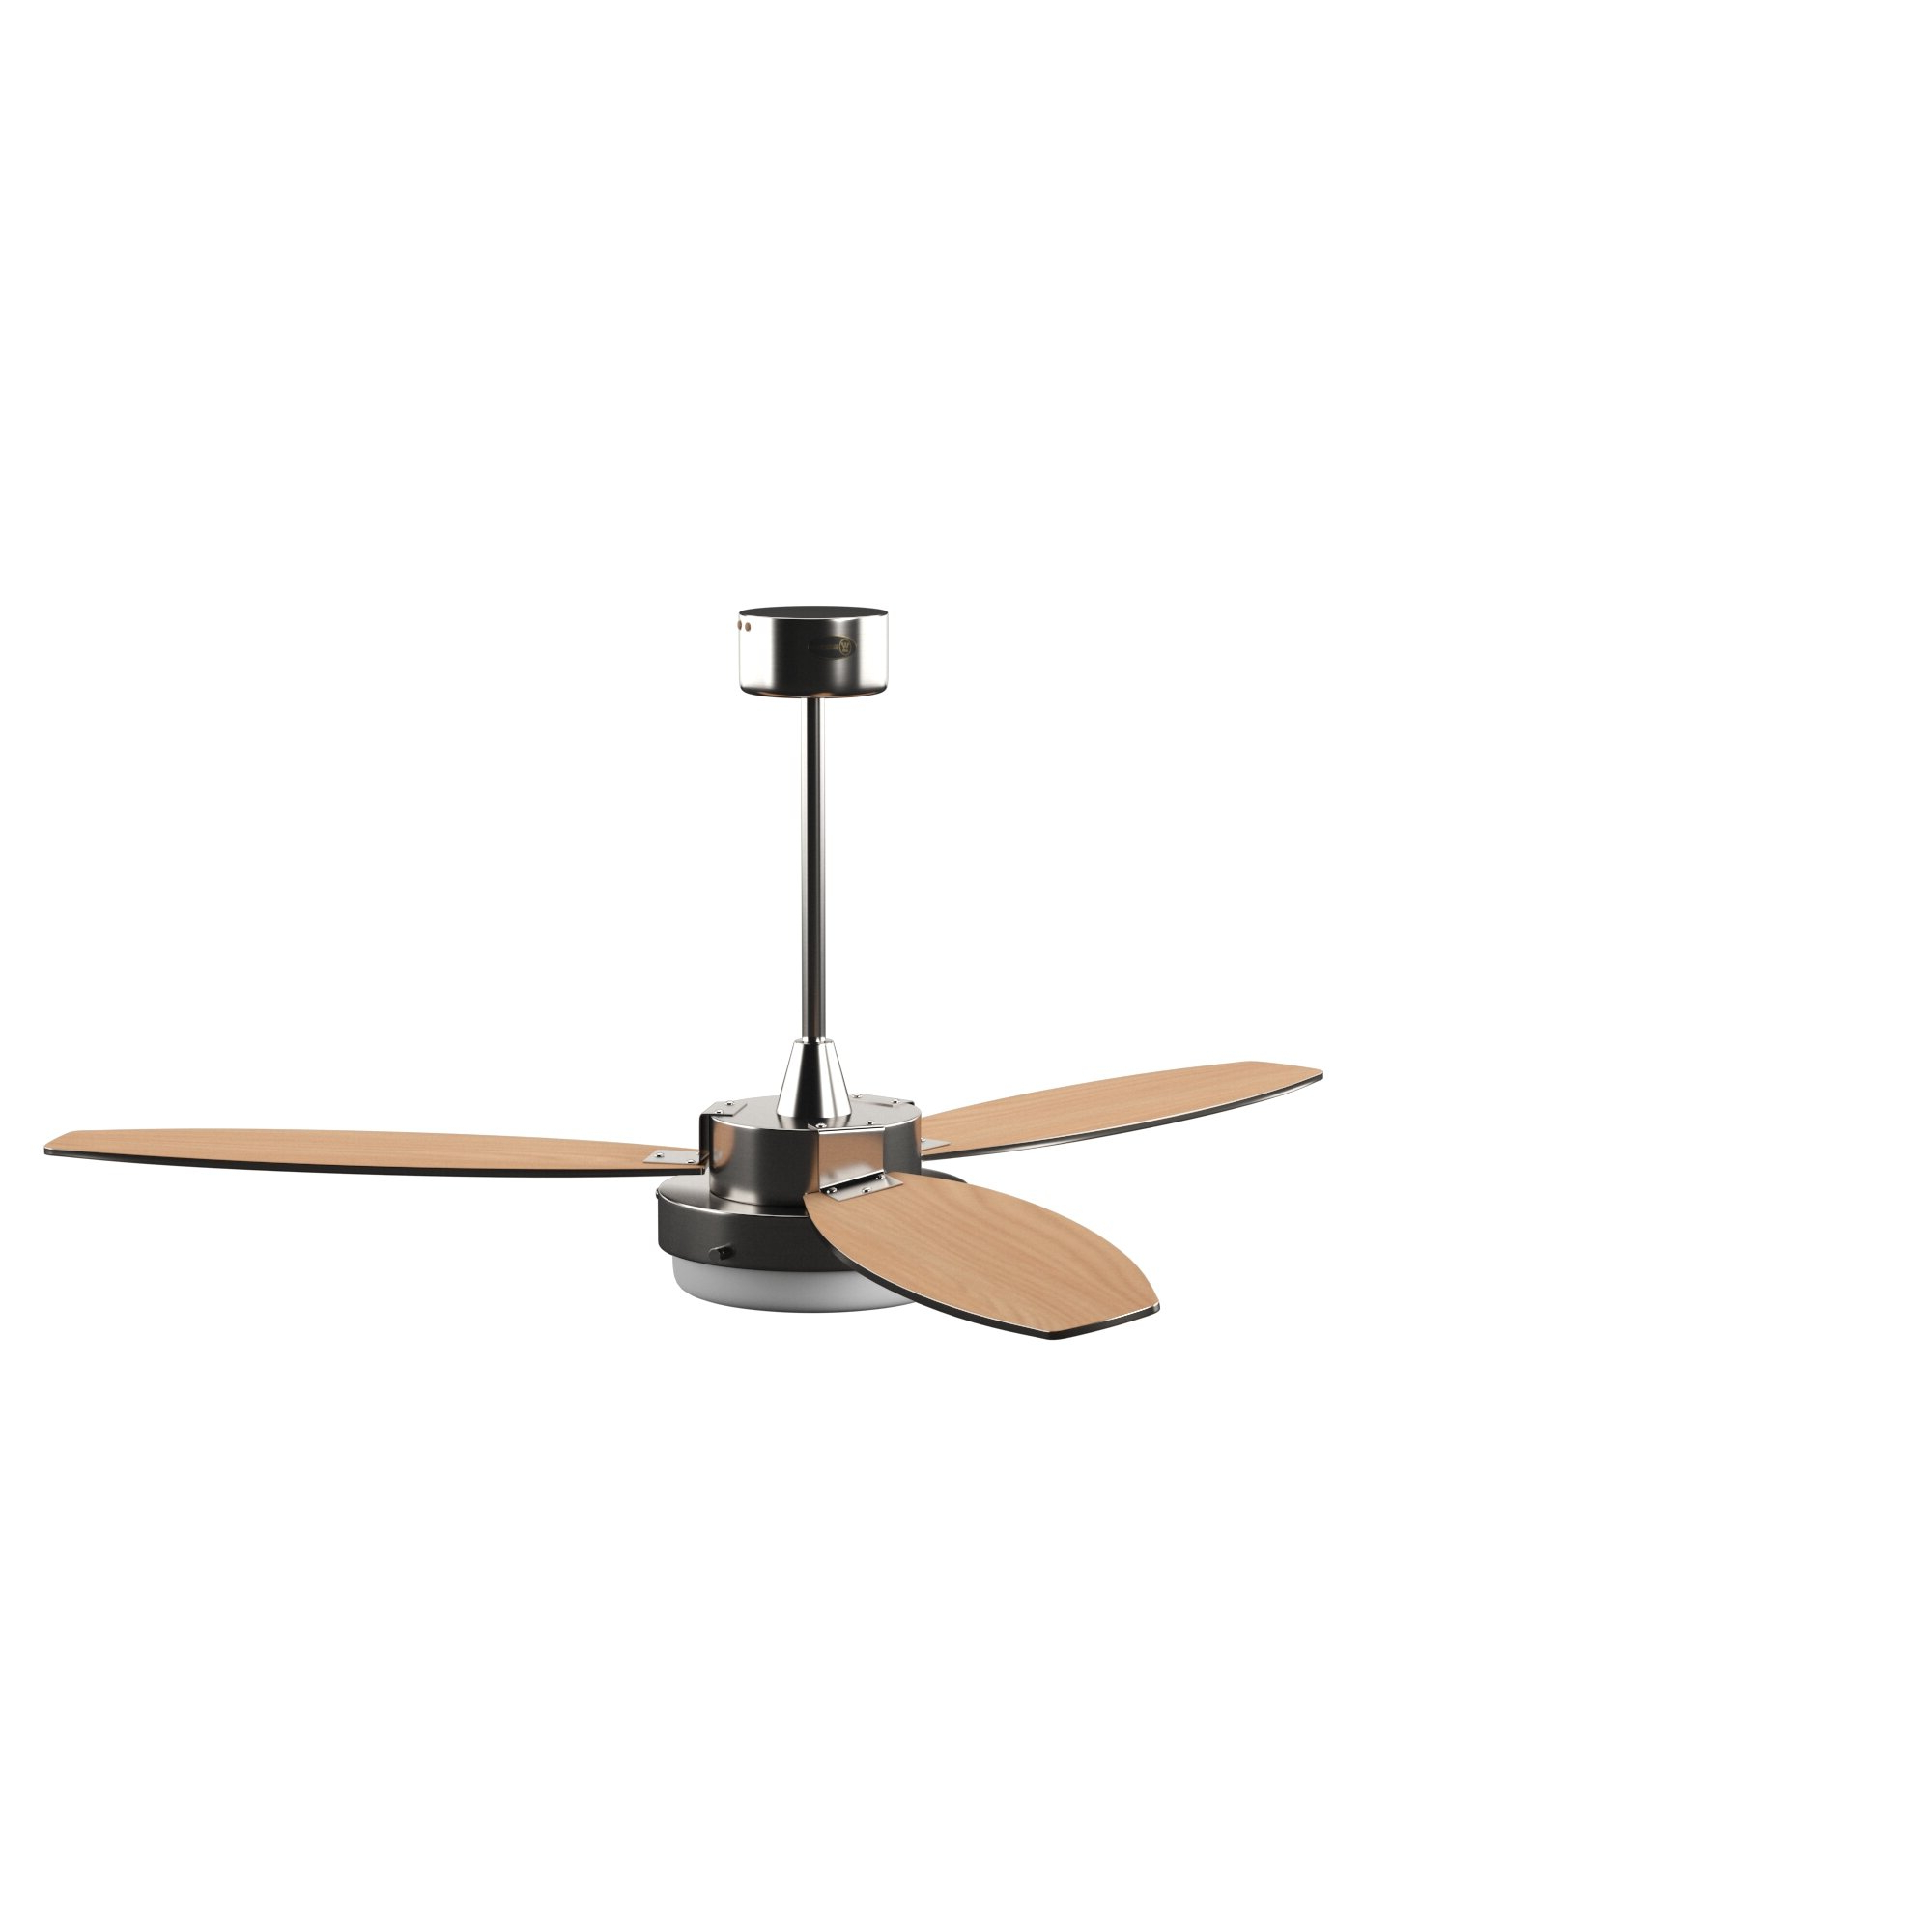 """Famous Corsa 3 Blade Ceiling Fans In 52"""" Corsa Two Light Reversible Plywood 3 Blade Ceiling Fan, Light Kit Included (View 13 of 20)"""